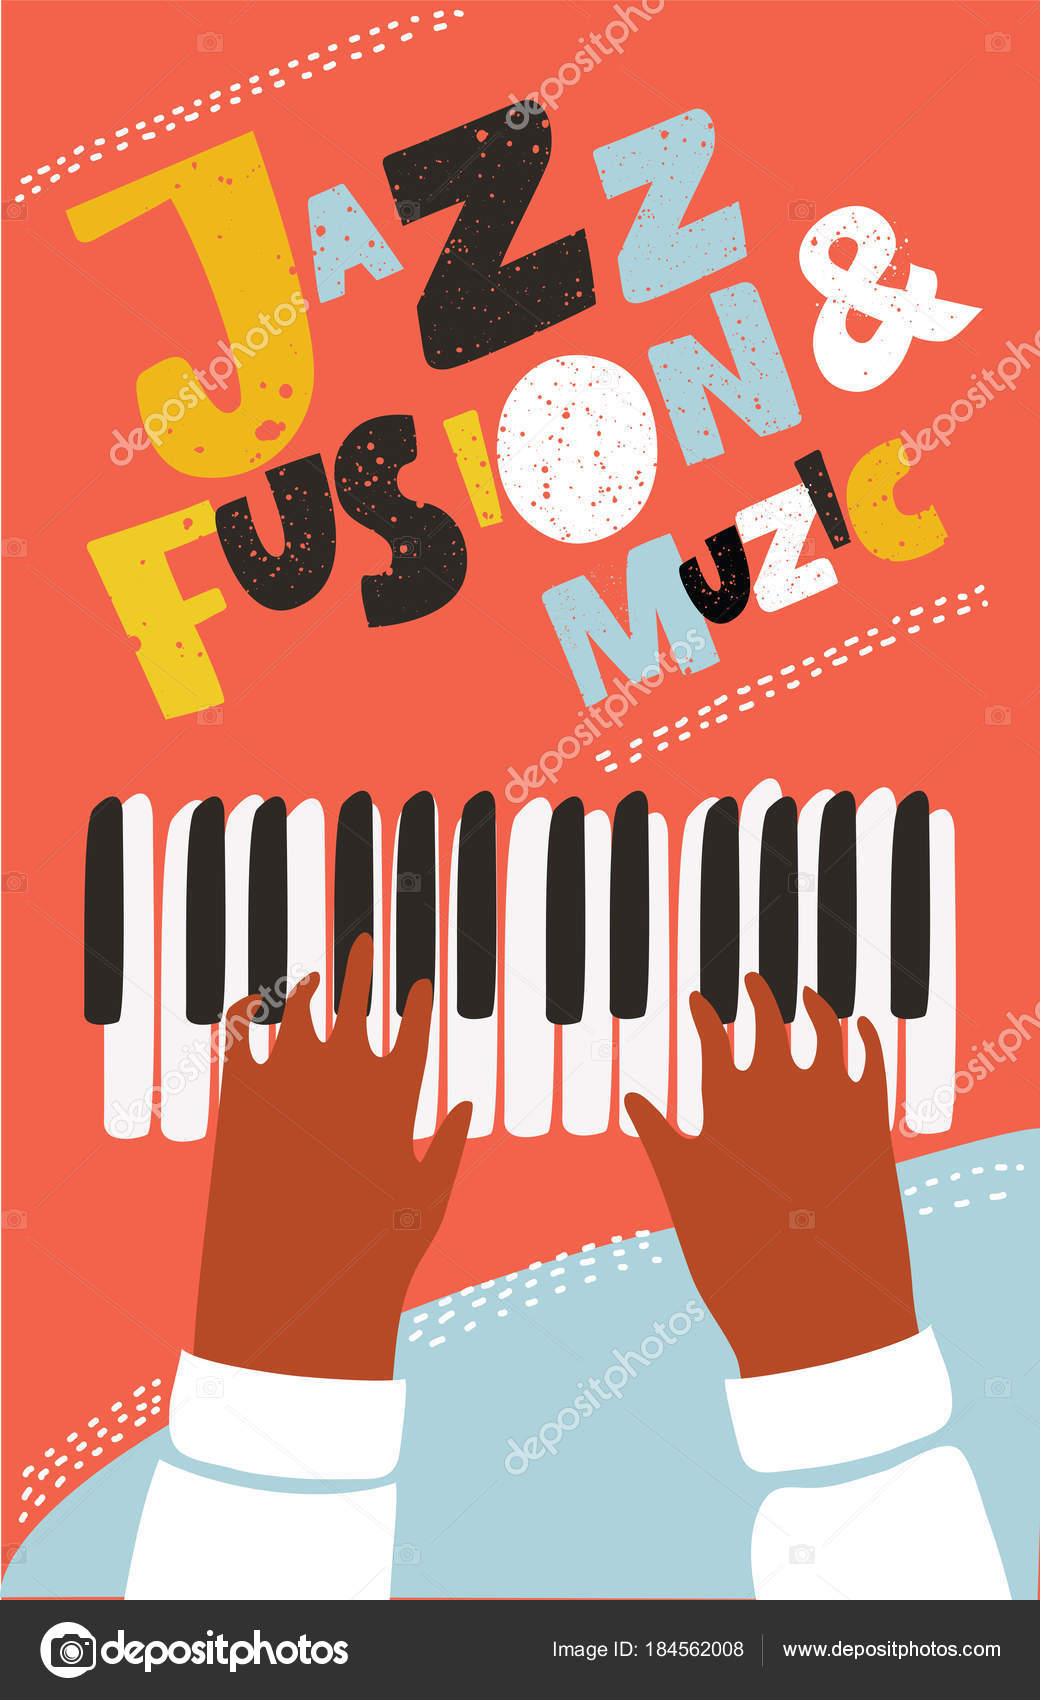 Vector Colorful Live Concept Of Modern Music Poster With Illustration Human Hands Playing On Piano Keys Print Design Template For Summer Concert Party